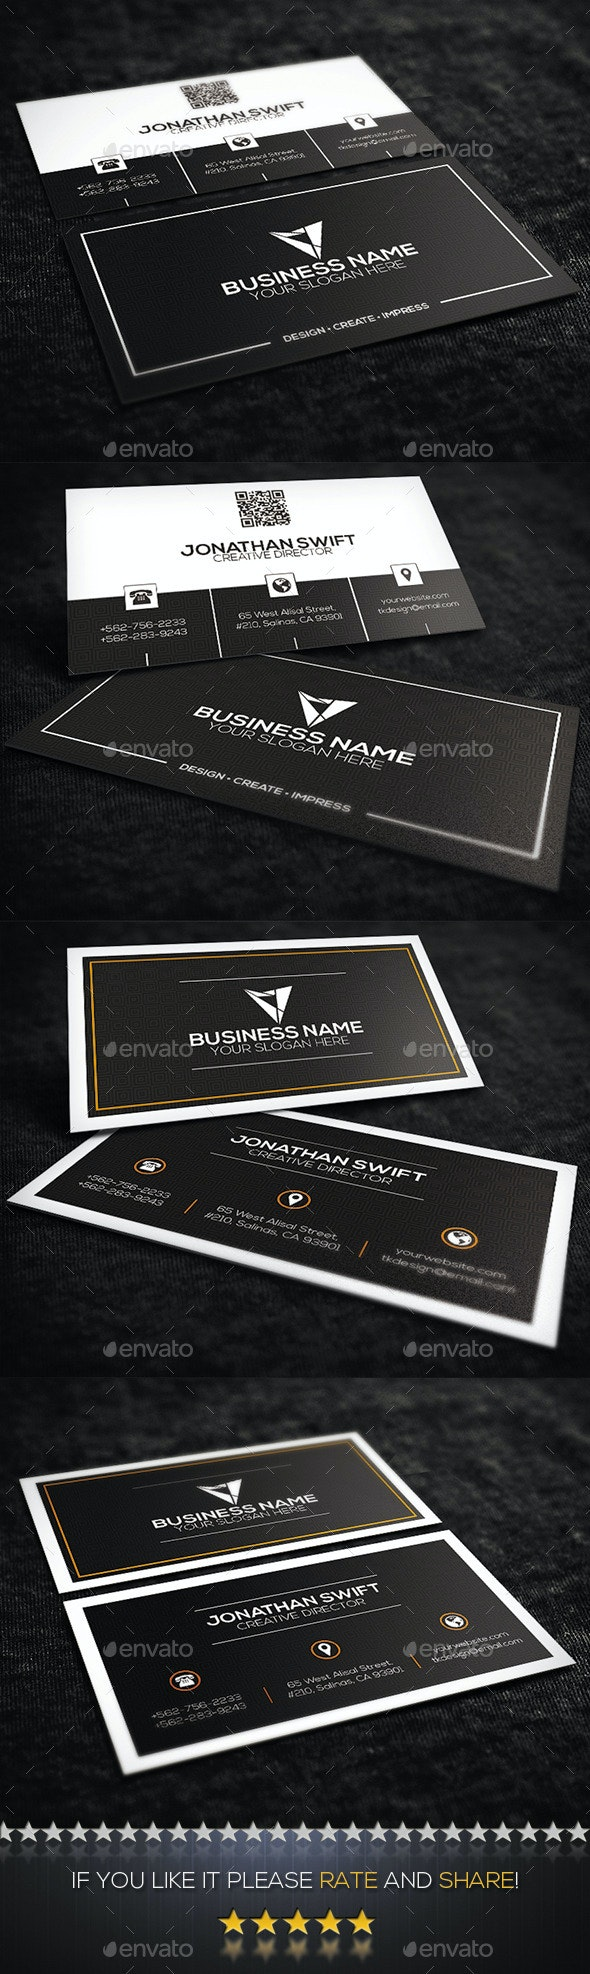 2 in 1 Corporate Business Card Bundle No.03 - Corporate Business Cards